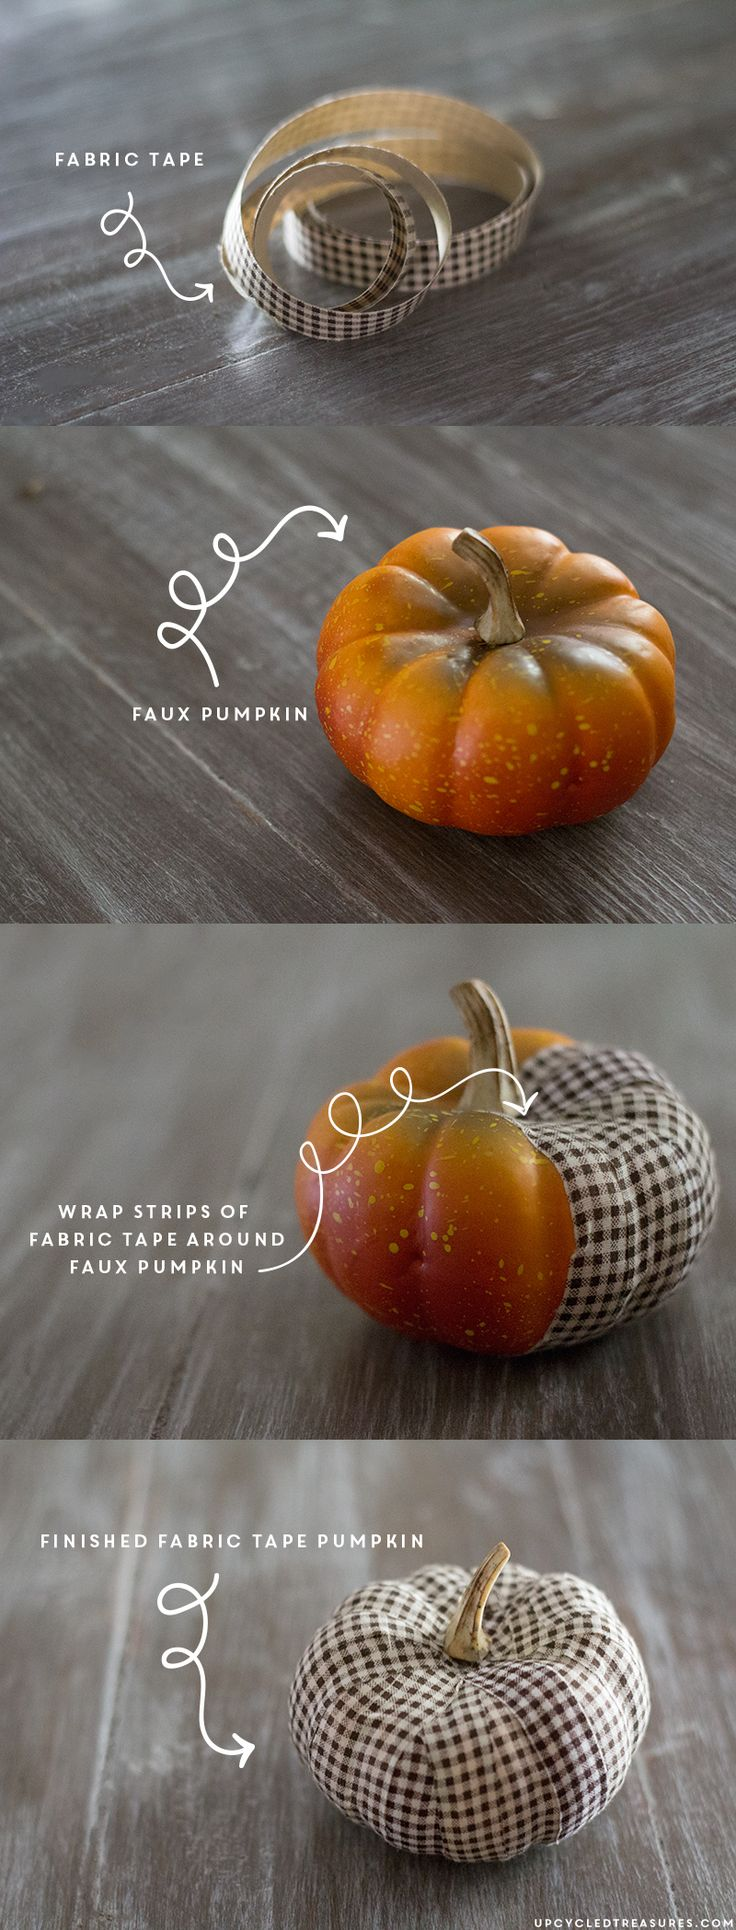 LOVE these DIY Fabric Tape Pumpkins! Wrap faux pumpkins with fabric tape for an adorable, rustic touch. upcycledtreasures.com